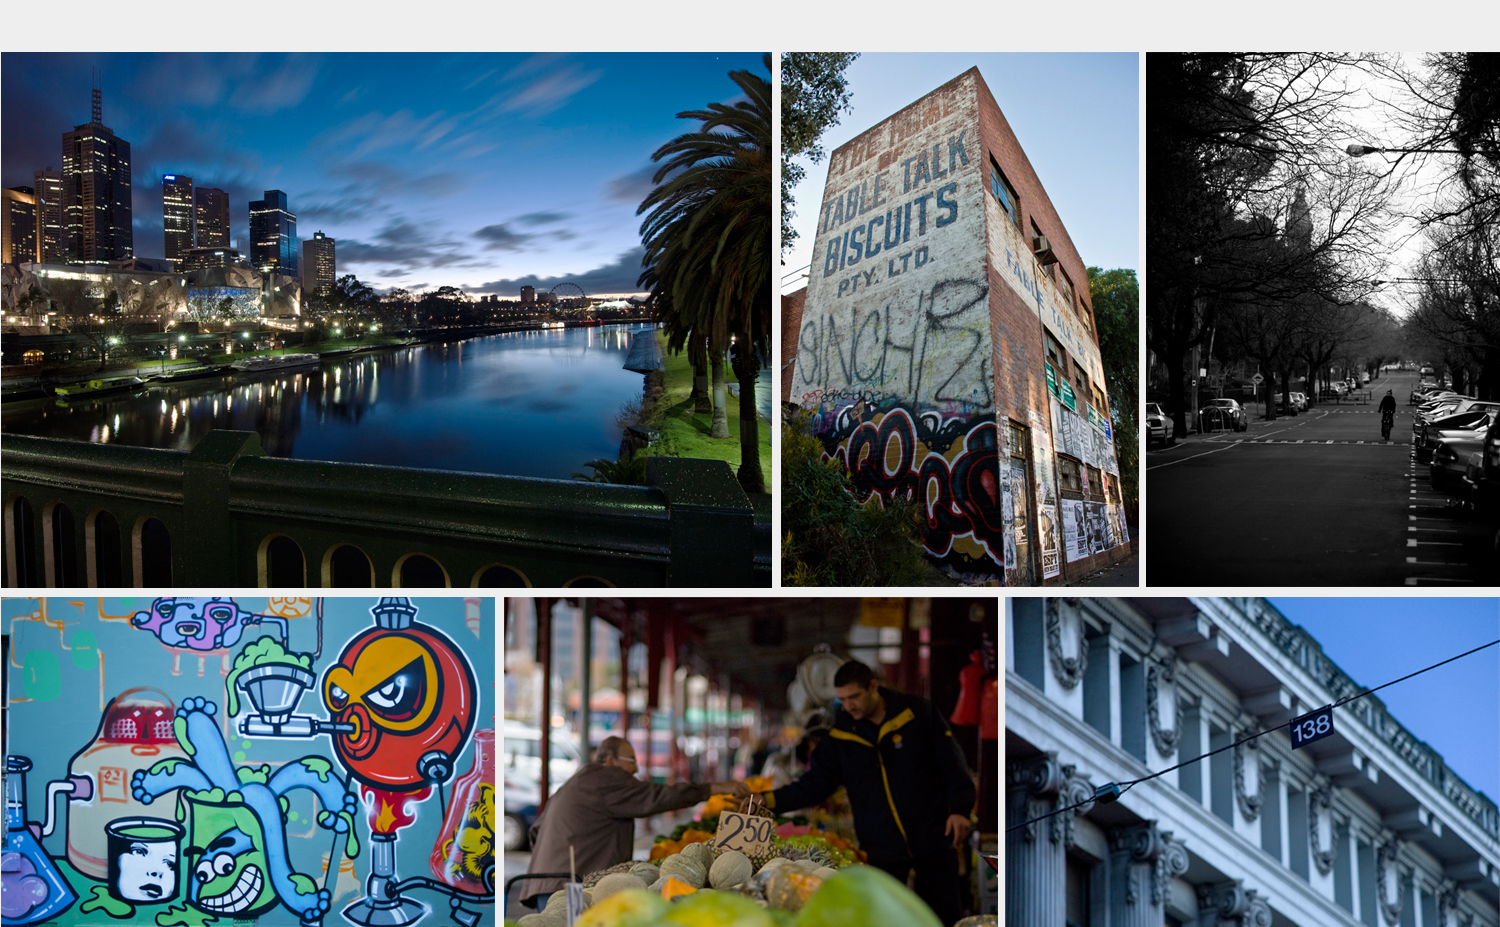 Melbourne. One of the most liveable cities in the world. Our Interior Design is born from living in this great city.